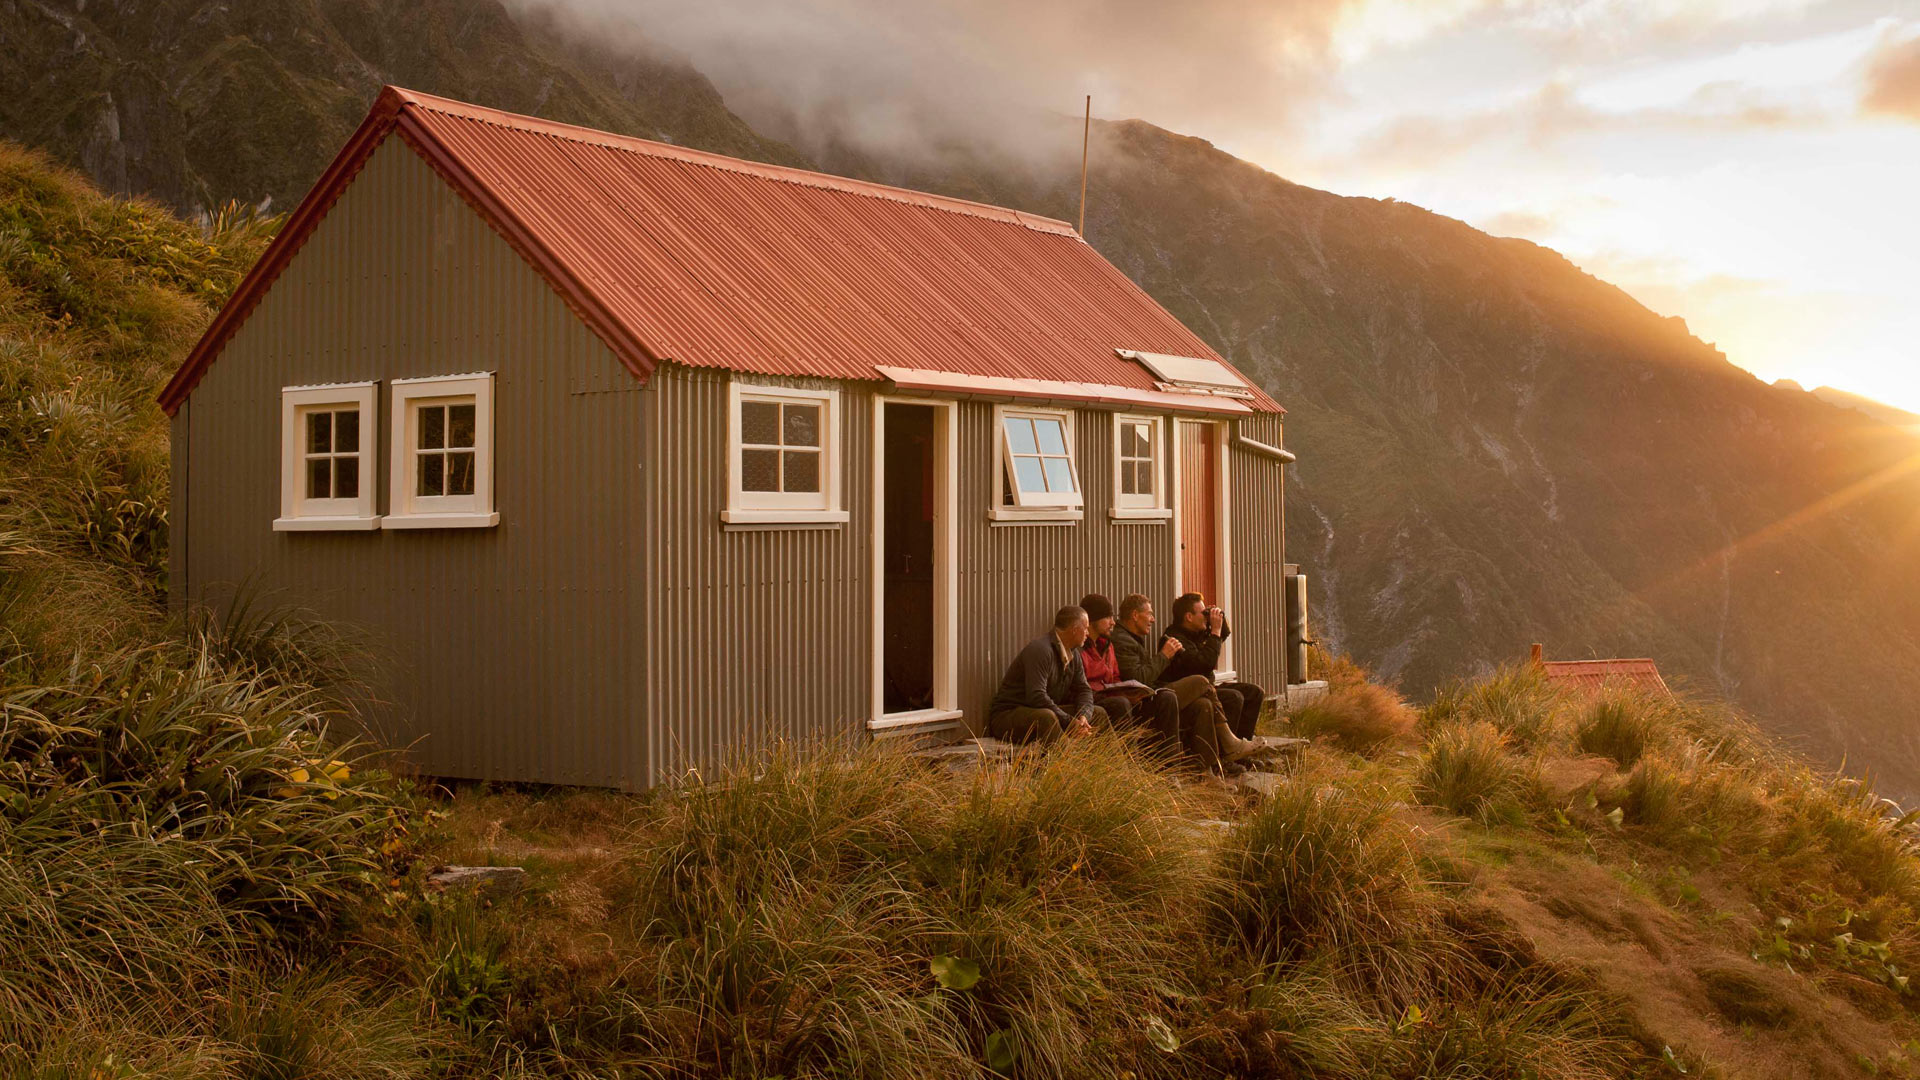 Chancellor Hut: Westland Tai Poutini National Park, West Coast region